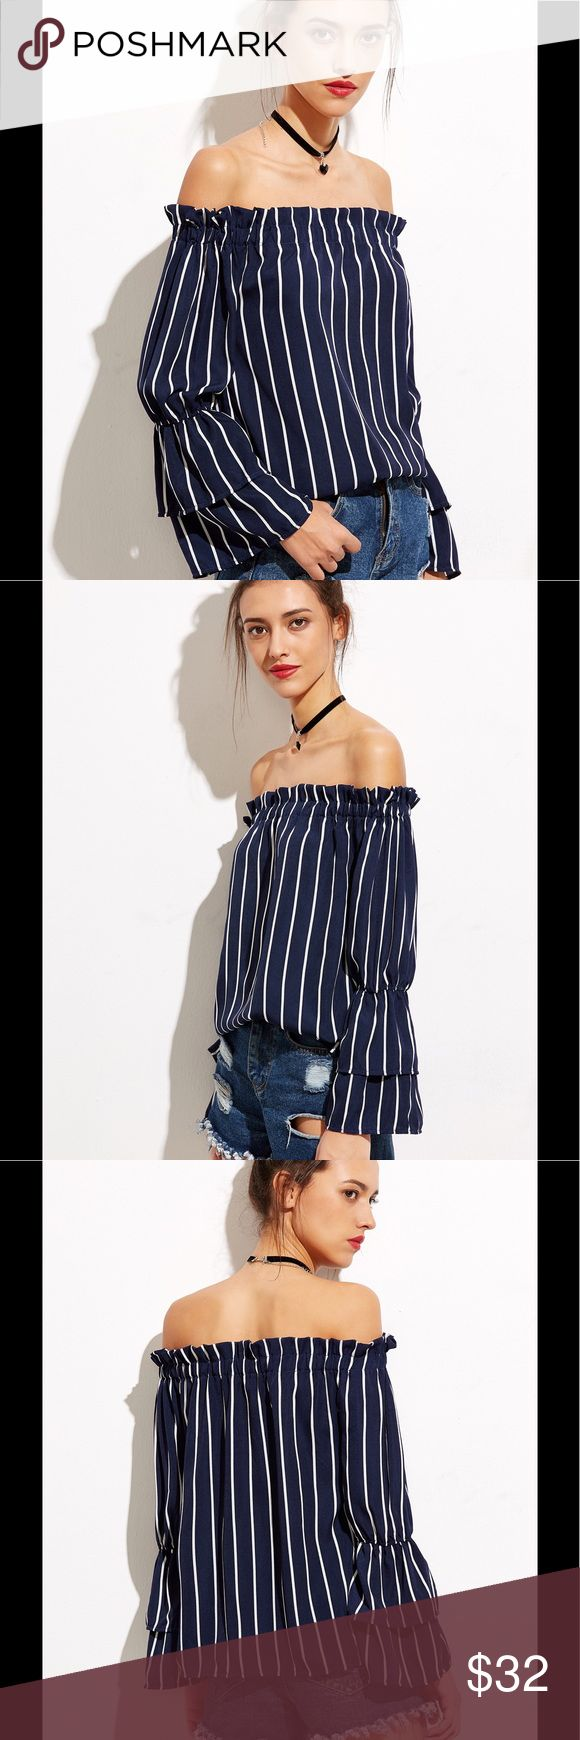 Just in! Easy Breezy off the Shoulder Top Love this easy, breezy cold shoulder top! Vertical Striped Tiered Bell Sleeve Bardot Top in rich navy. 1005 poly. Fits to size. Bust(Cm):  S:92cm, M:96cm, L:100cm, XL:104cm Length(Cm): S:51cm, M:52cm, L:53cm, XL:54cm Sleeve Length(Cm): S:53cm, M:54cm, L:55cm, XL:56cm Karina's Threads Tops Blouses